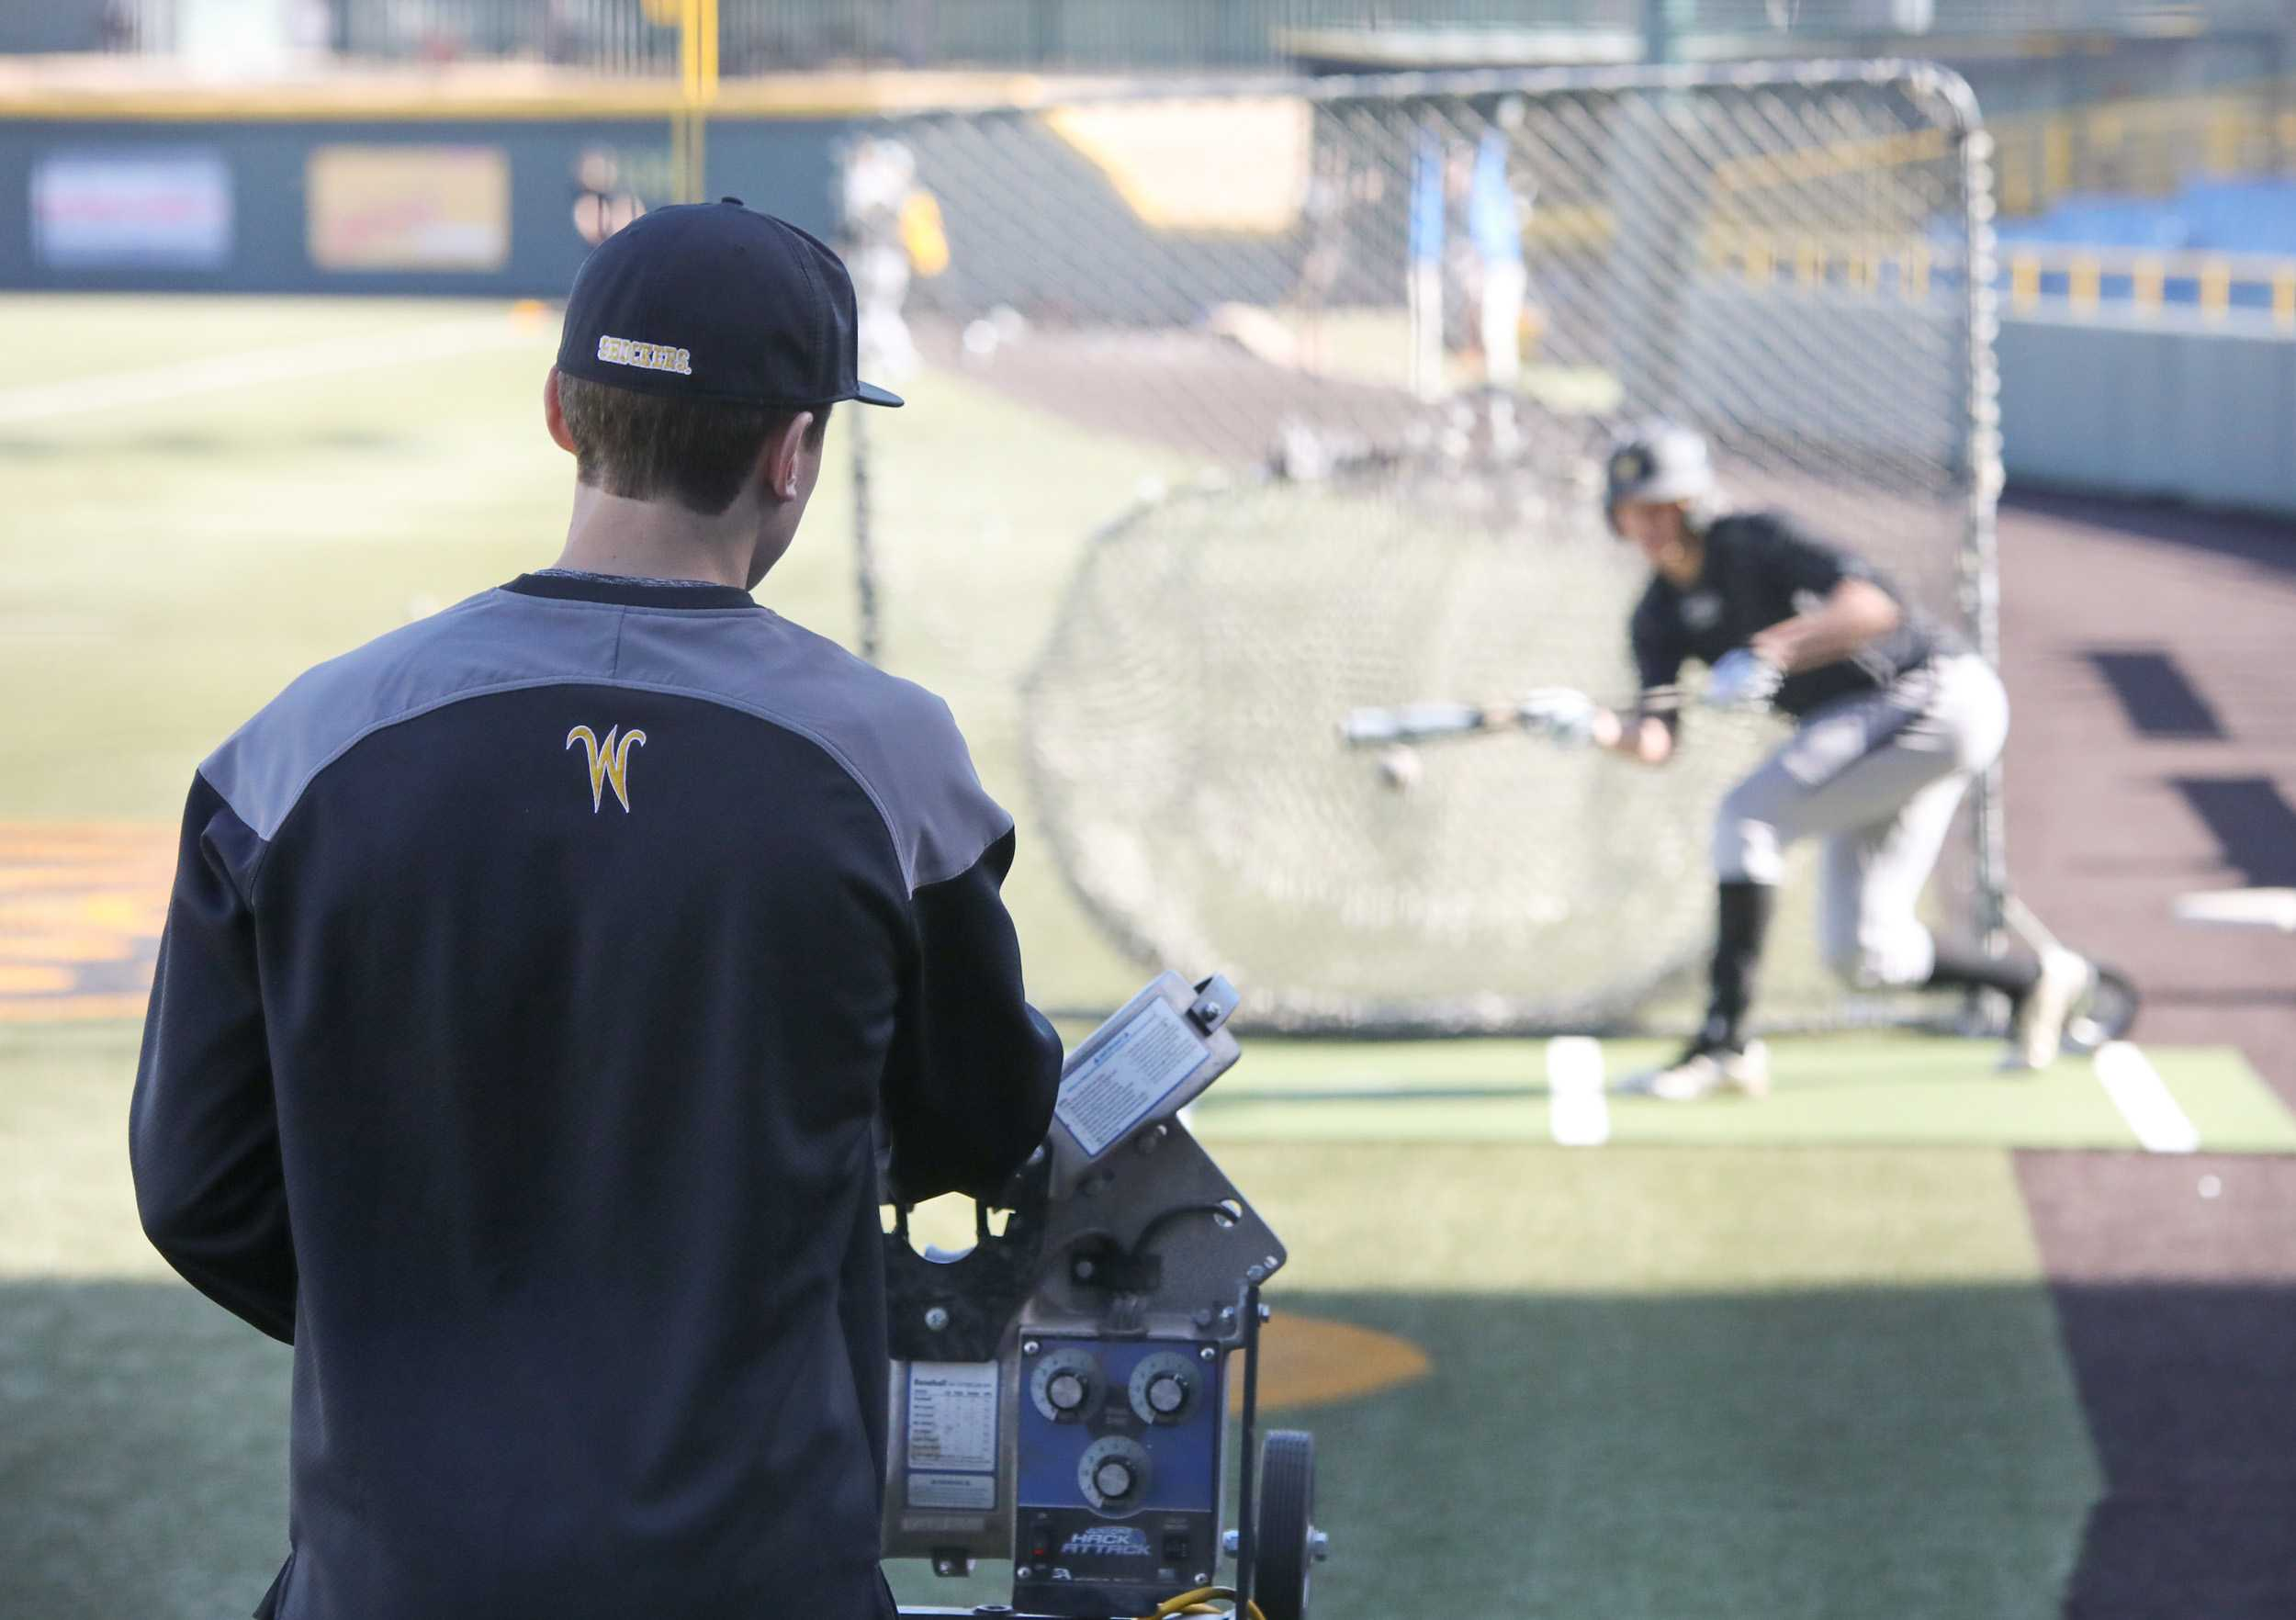 Wichita State baseball manager Nathan Brisco loads the pitching machine while a player takes bunting practice on Feb. 10, 2017. Brisco is a transfer student from Kansas City Community College where he redshirted on their baseball team as a freshman last year. Though a shoulder injury prevented Brisco from playing at KCCC, he has still found a way to be involved with baseball here at WSU.